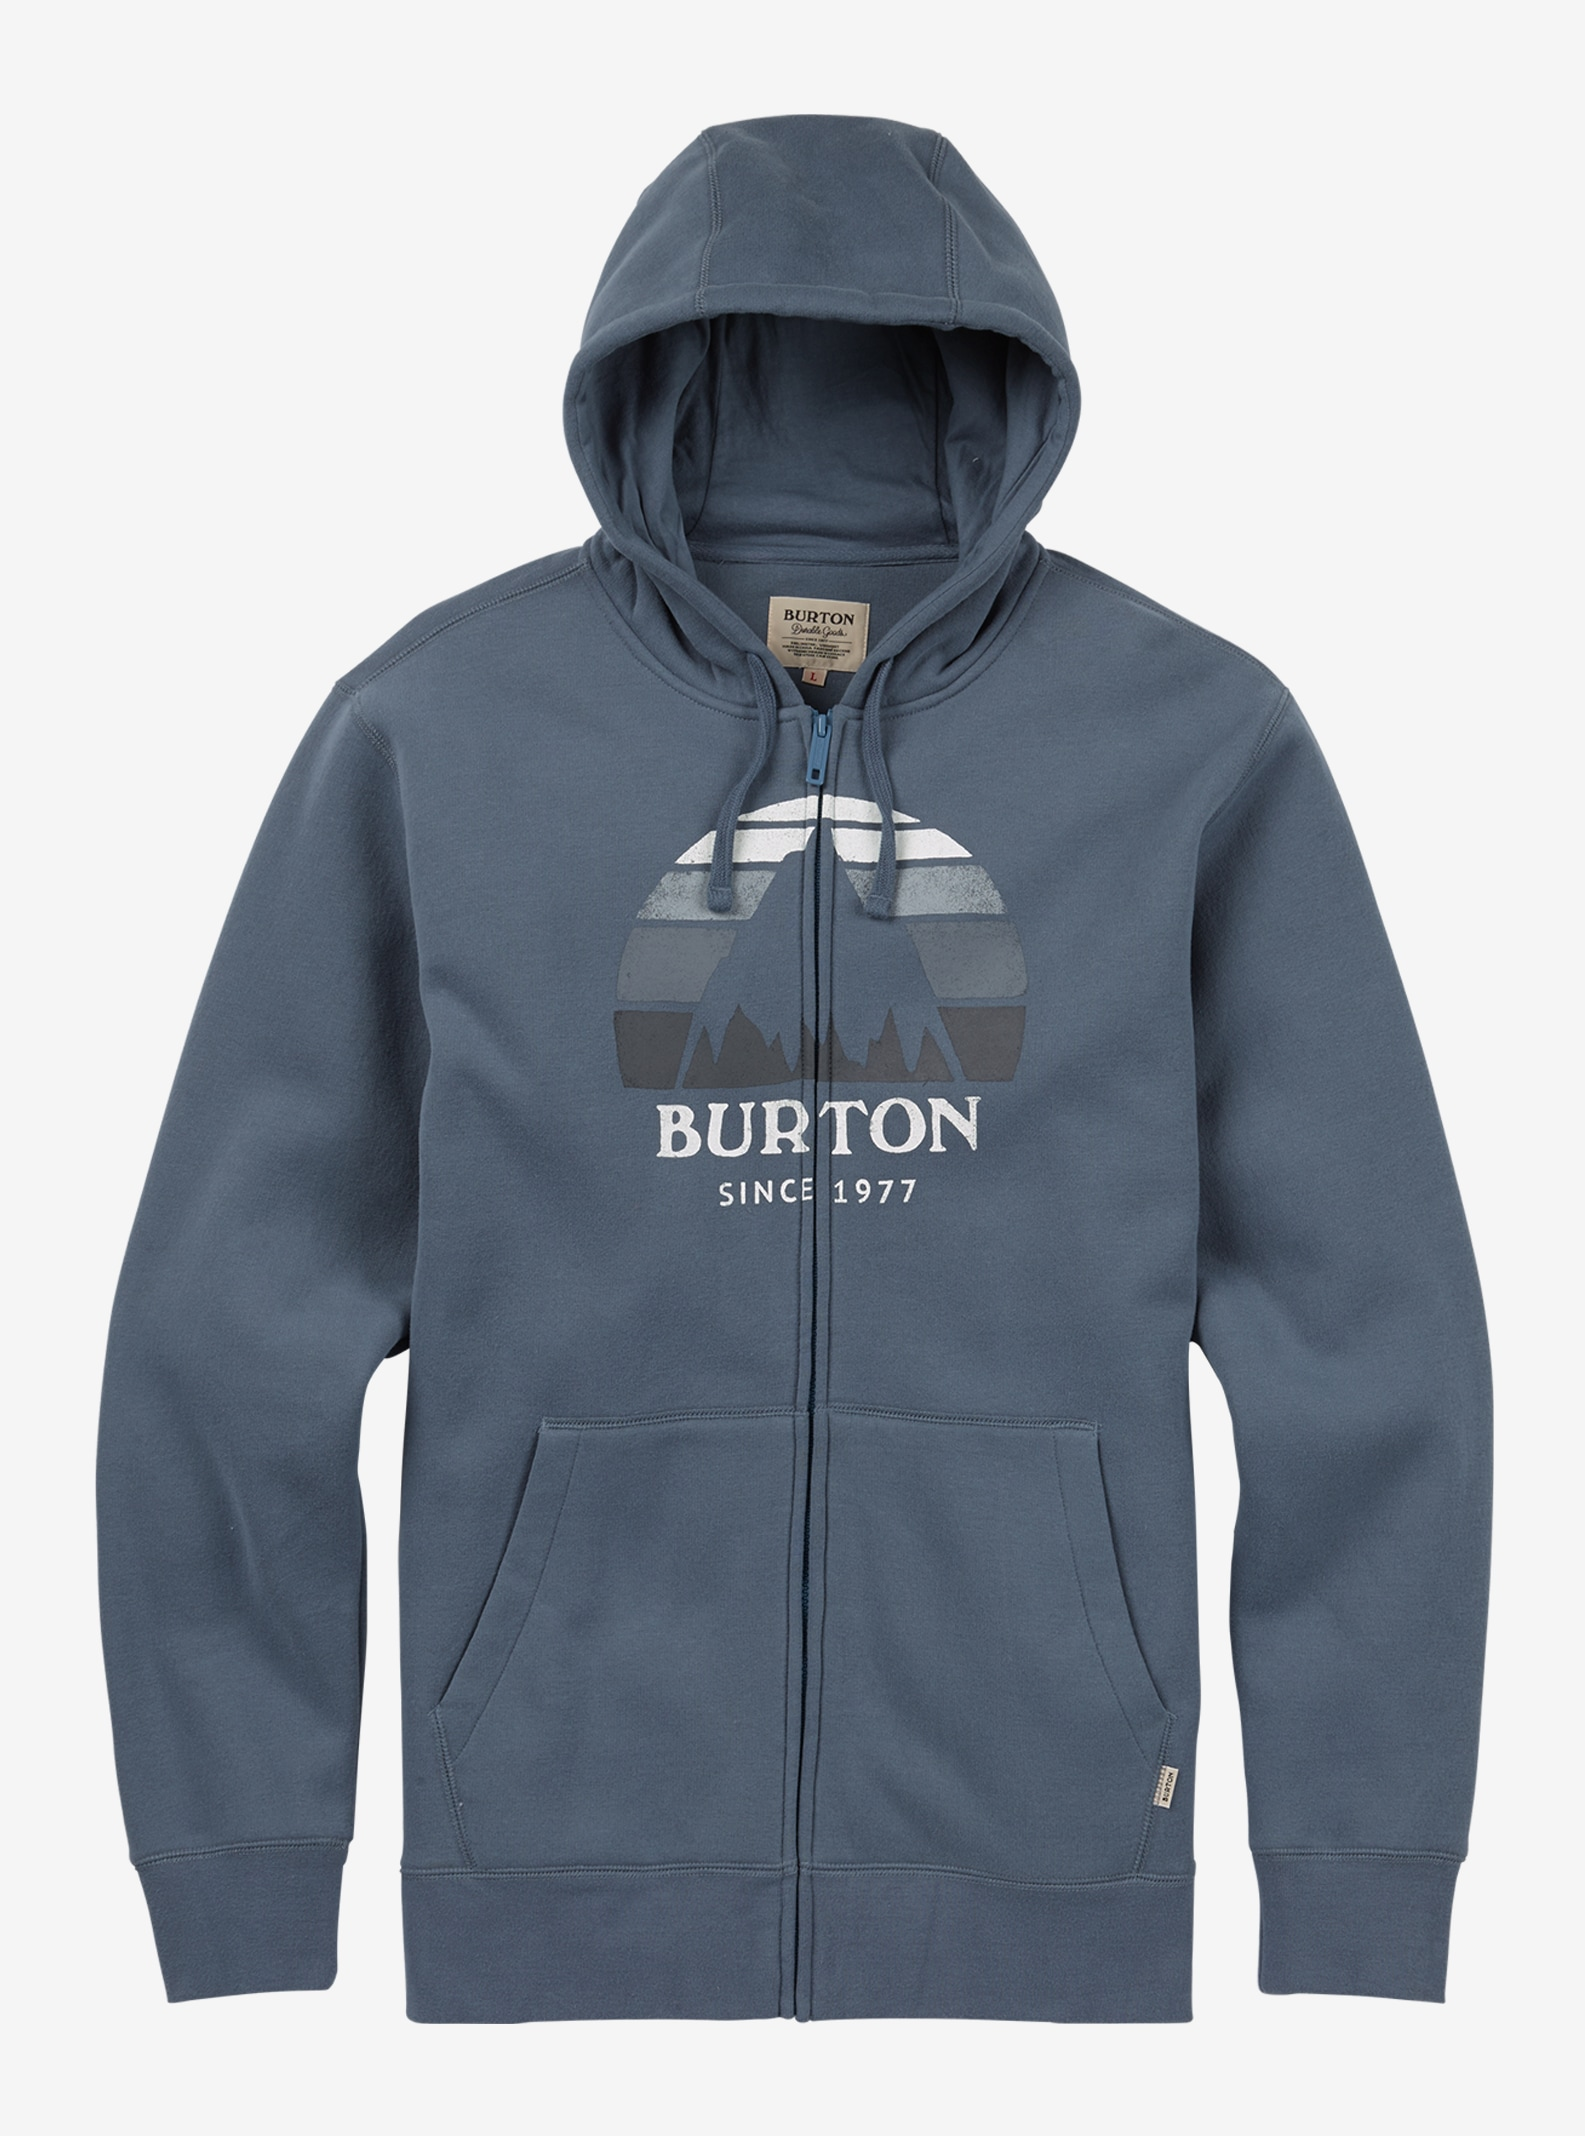 Men's Burton Underhill Full-Zip Hoodie shown in LA Sky